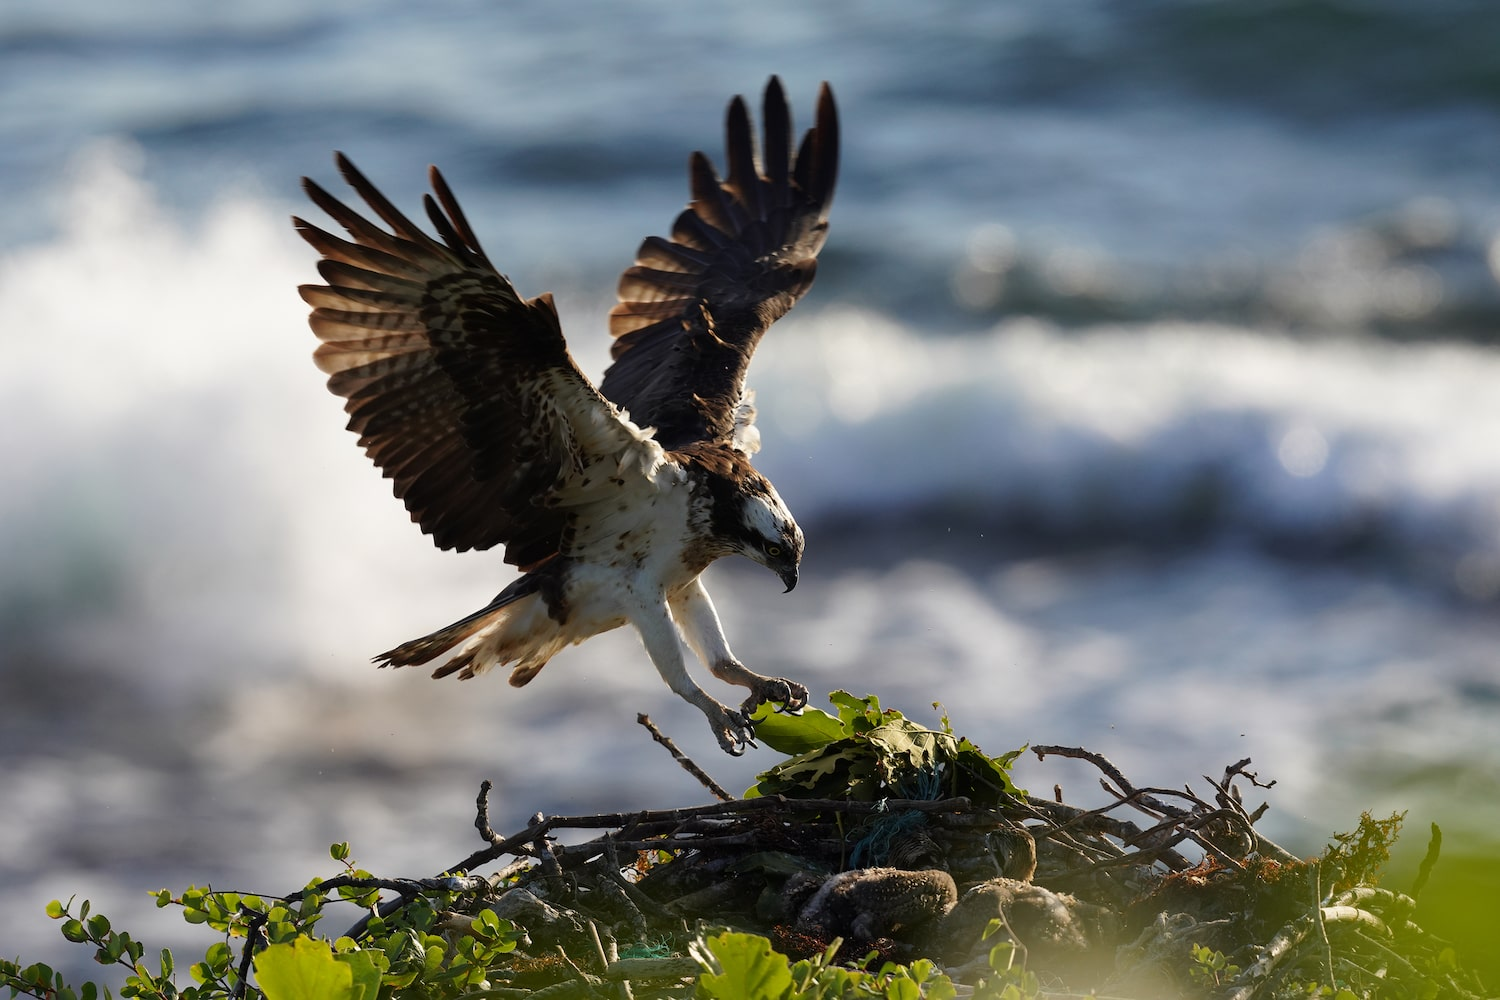 hawk-in-action-against-ocean-waves-alpha-7RIV